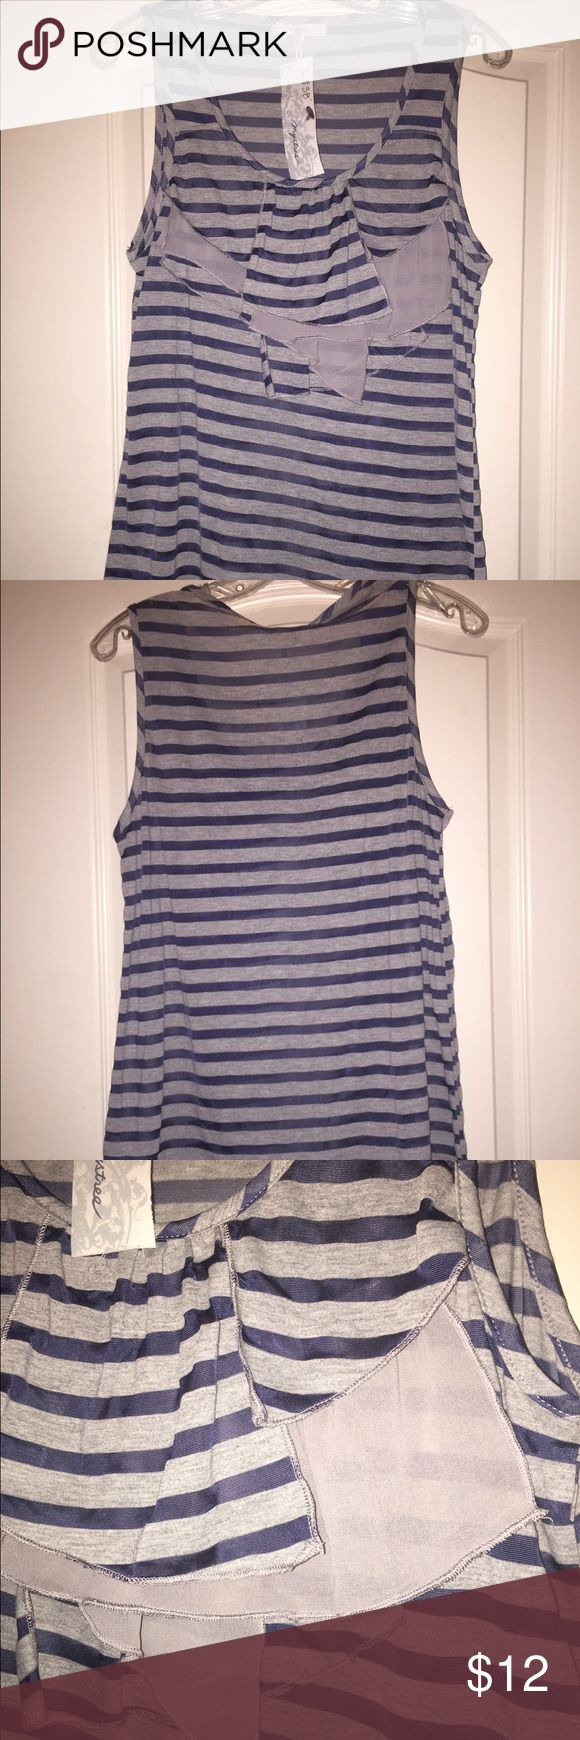 Mysteree Striped Tank Navy and grey striped tank with ruffles in the front. It's 80% polyester and 40% Viscose. The material is sheer. Mystree Tops Tank Tops